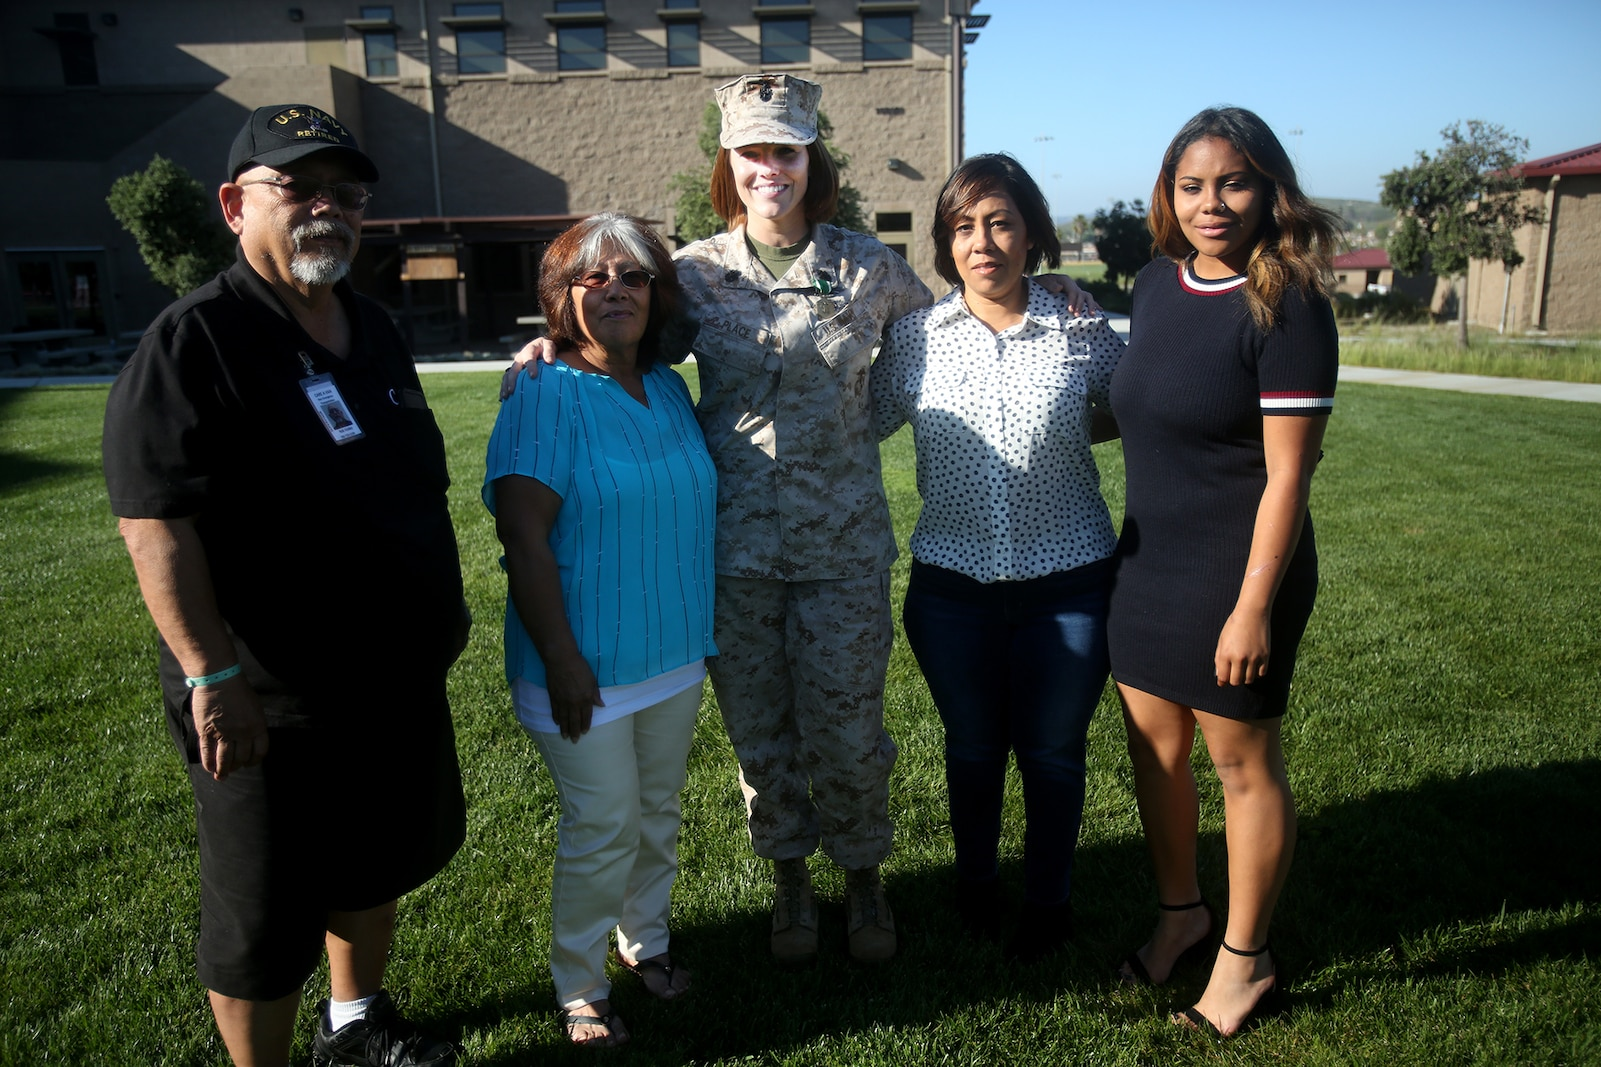 Chief Petty Officer Jaclyn Place poses for a photo with her neighbors and their family during Place's award ceremony aboard Camp Pendleton, Calif., March 11, 2016. Place is a lead chief petty officer with the Headquarters Regimental Aid Station, 1st Marine Logistics Group, and was awarded an impact Navy and Marine Corps Commendation Medal for her selfless and decisive actions that saved the lives of her neighbors. (U.S. Marine Corps photo by Sgt. Laura Gauna/released)